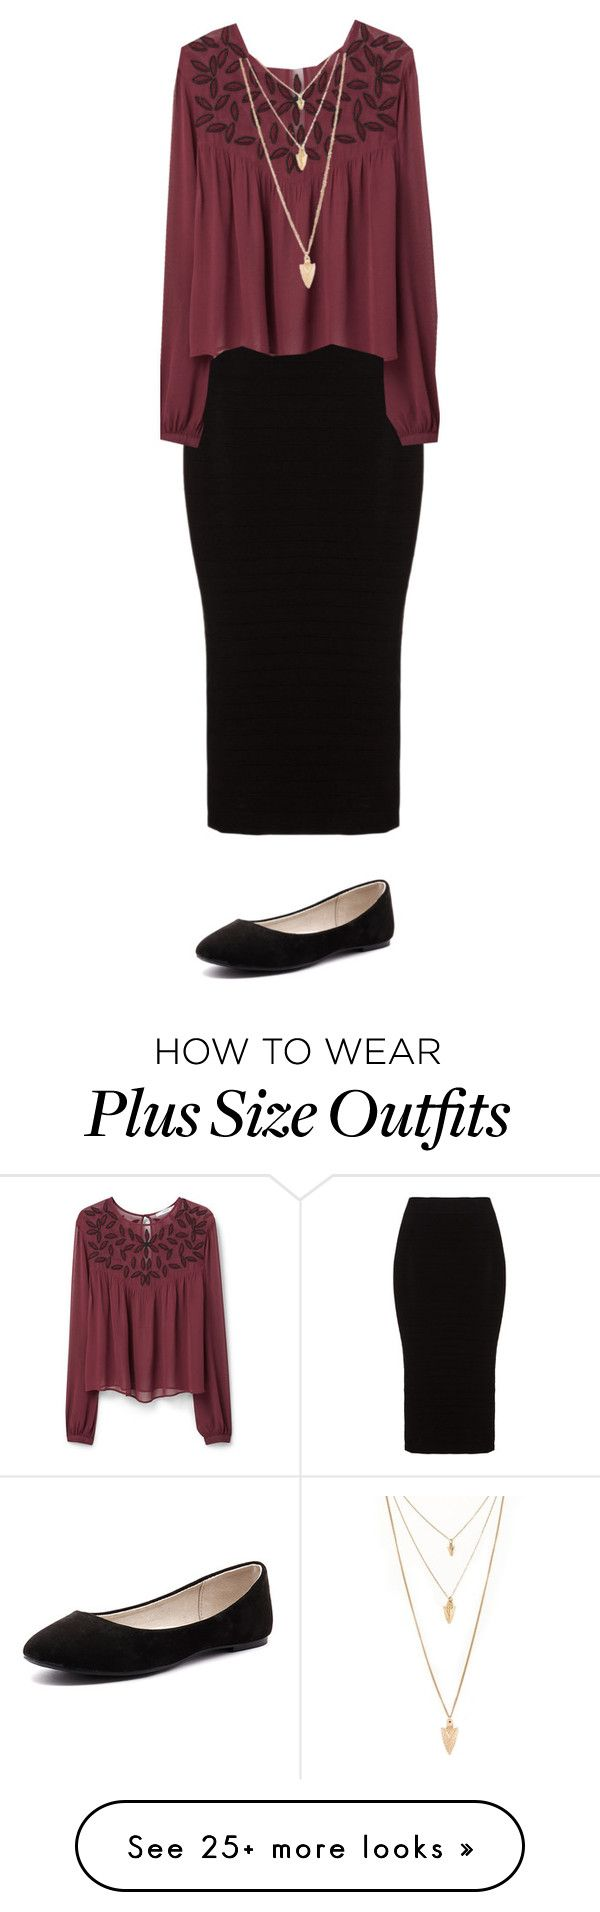 """Classy, Elegance"" by fashionlifeforevaaa on Polyvore featuring Mat, Verali, MANGO, Forever 21, women's clothing, women, female, woman, misses and juniors"